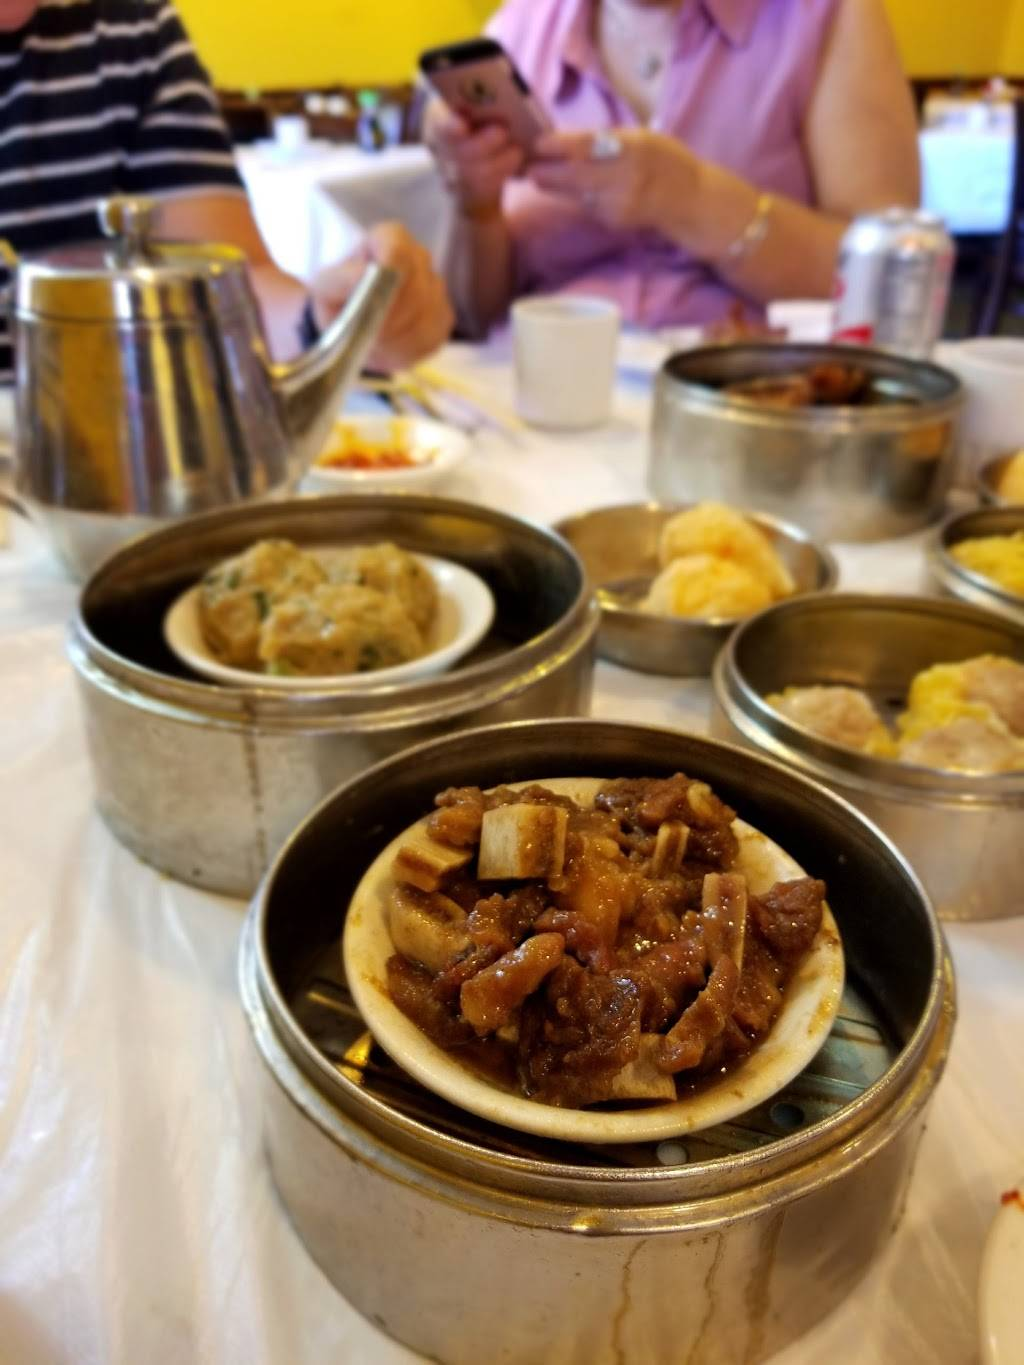 China Chef   restaurant   3708, 1322 Paterson Plank Rd, Secaucus, NJ 07094, USA   2013486386 OR +1 201-348-6386